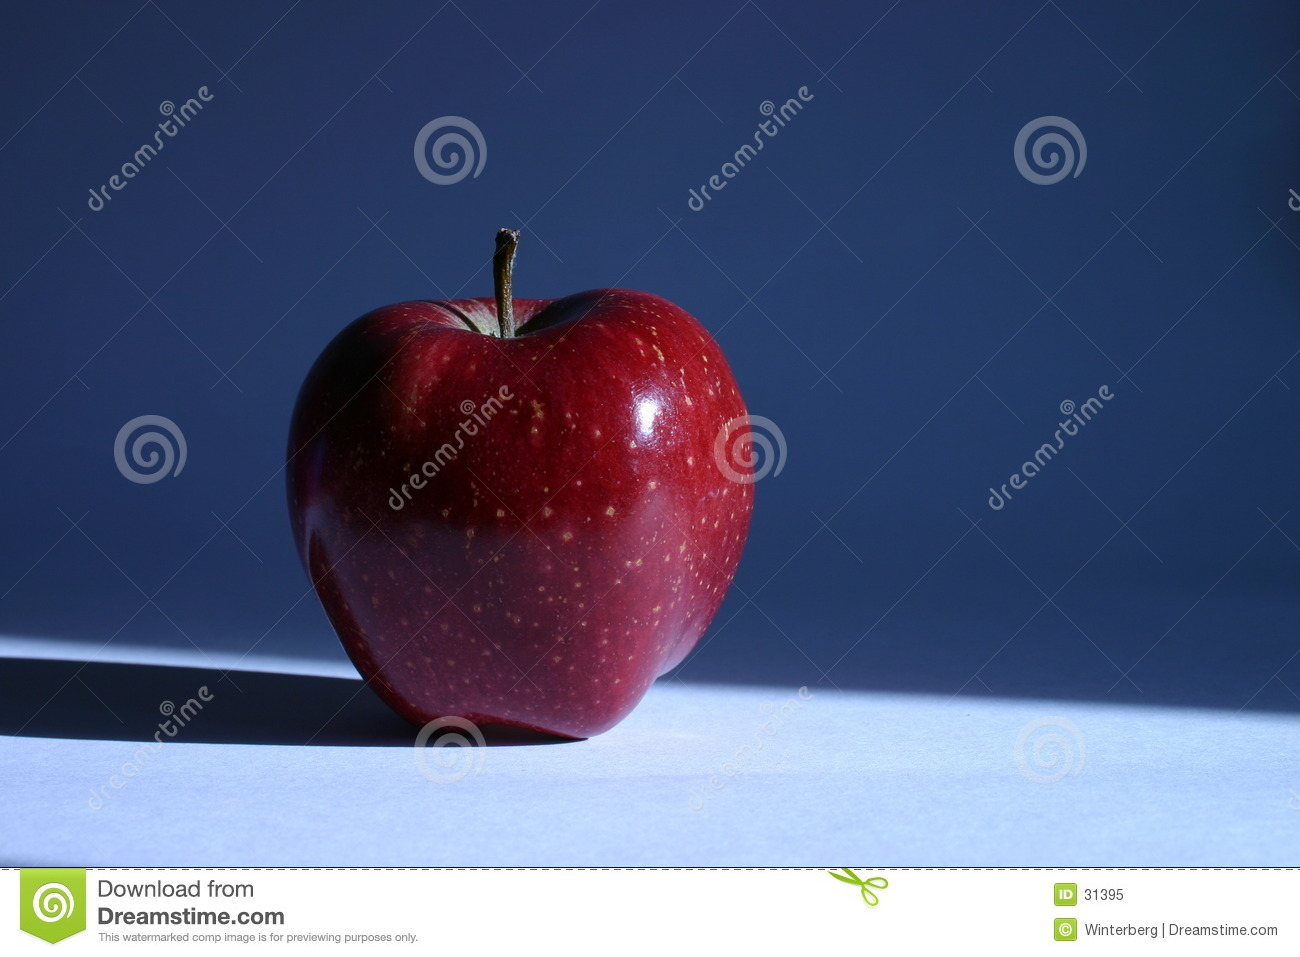 Apple rosso I